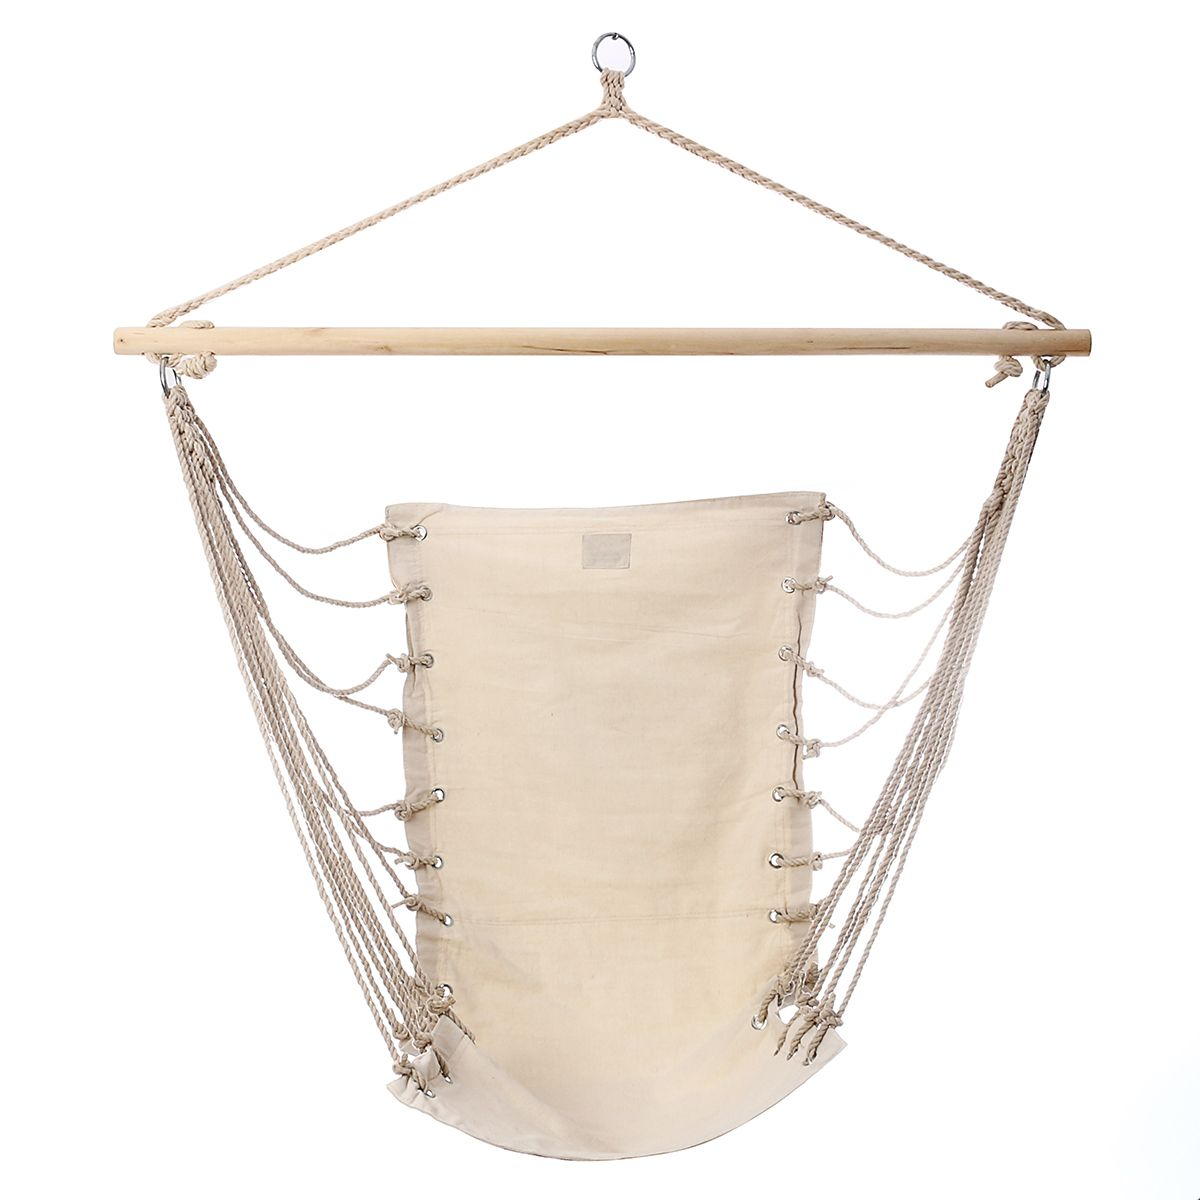 Outdoor Hammock Chair Hanging Chairs Swing Cotton Rope Net Swing Cradles Kids Adults Outdoor Hammock Chair Hammock Chair Outdoor Hammock